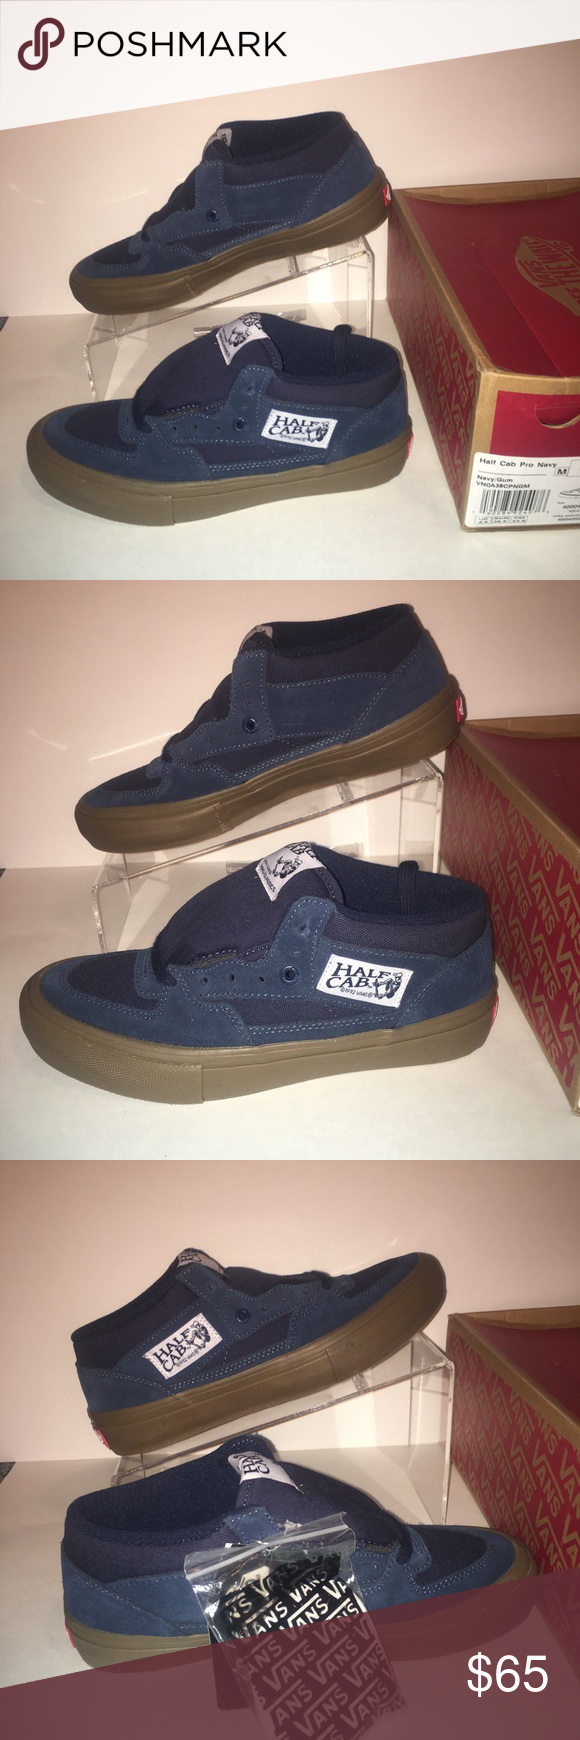 New Vans Half Cab Pro Navy Gum Size 6.5 New with box Includes extra laces  Size 6.5 Vans Shoes Sneakers 7eb3855ad